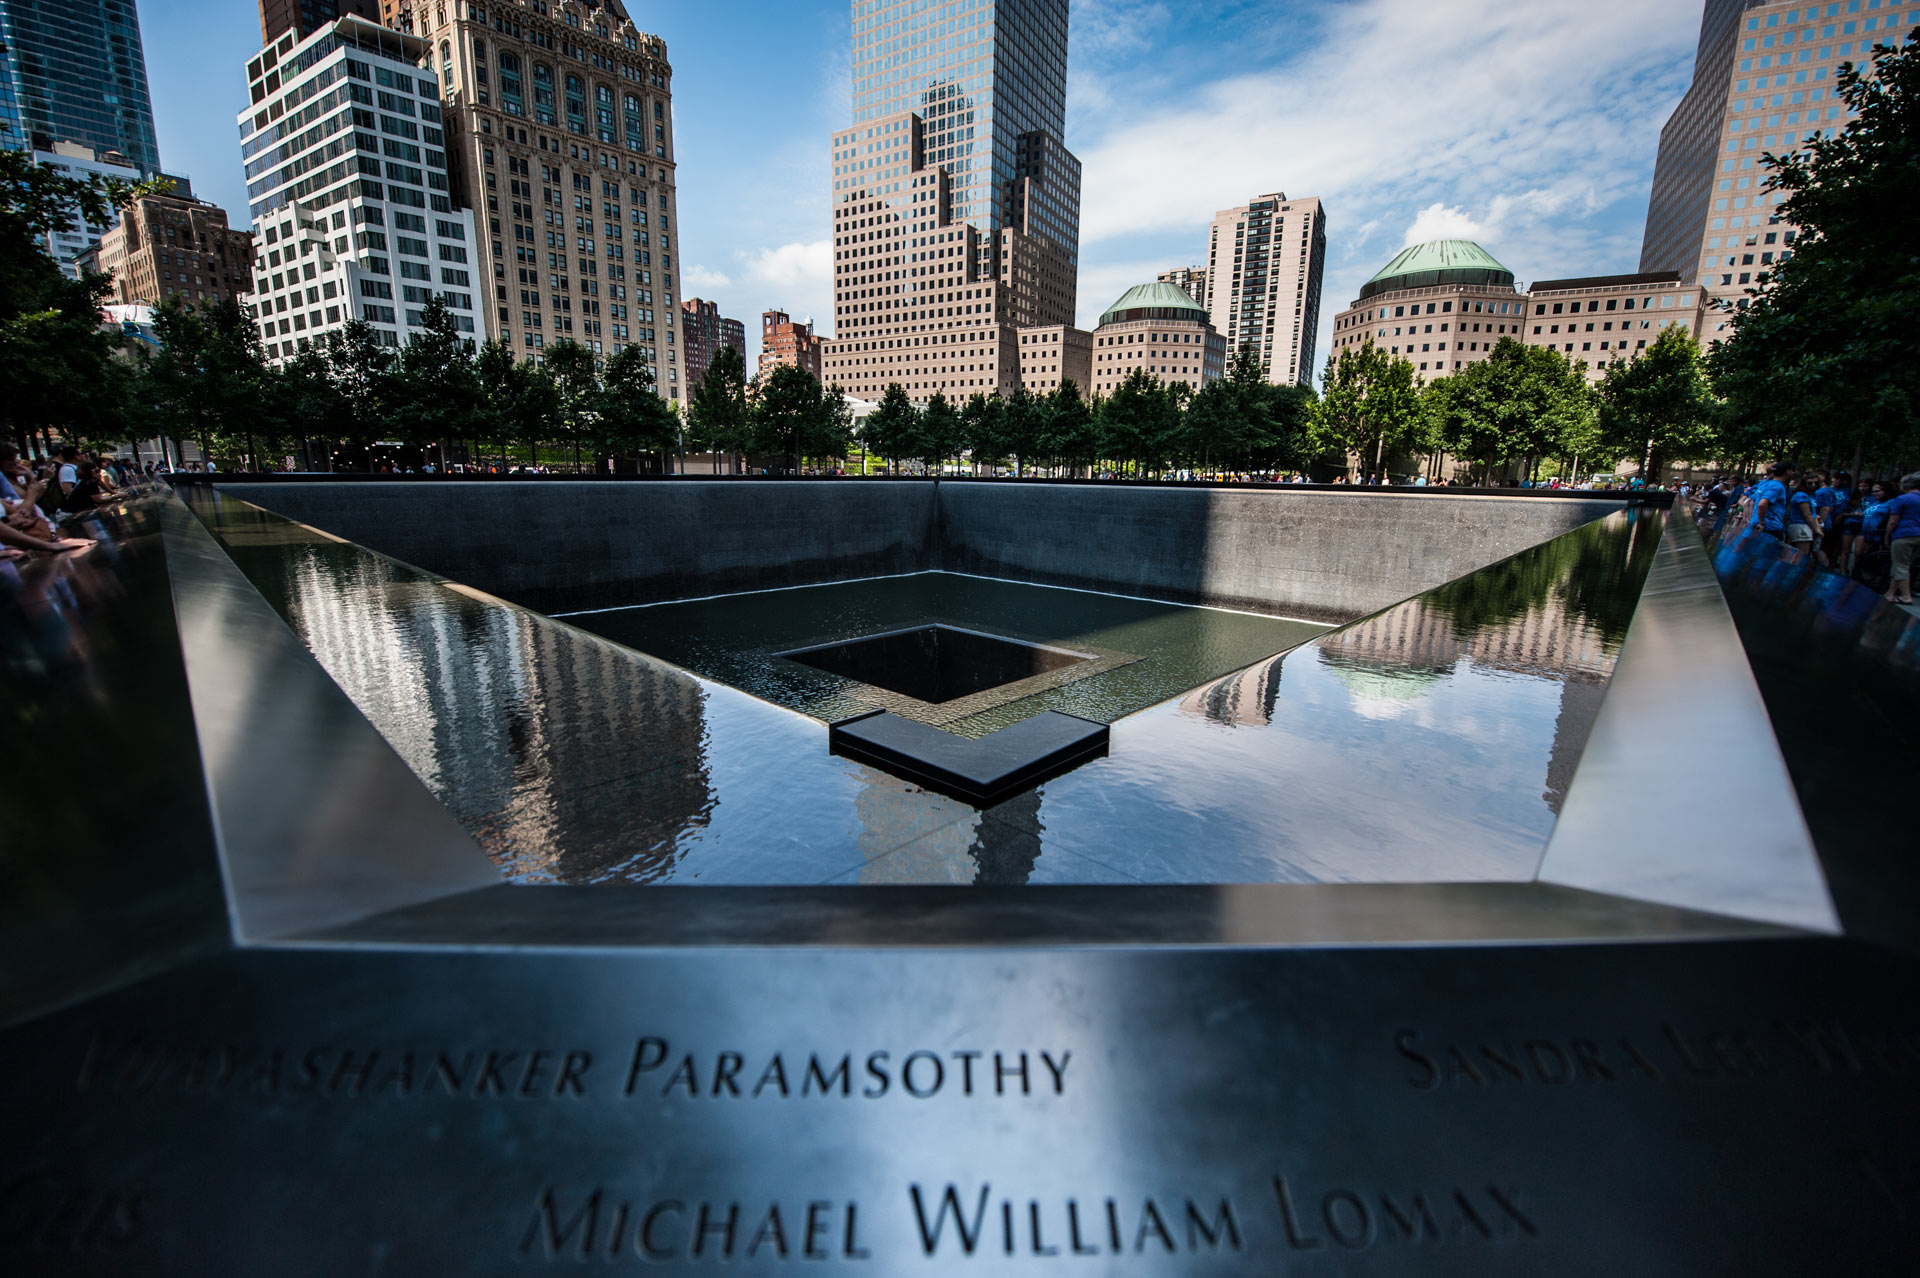 Reflecting pools at the National September 11 Memorial Museum in New York, NY, USA